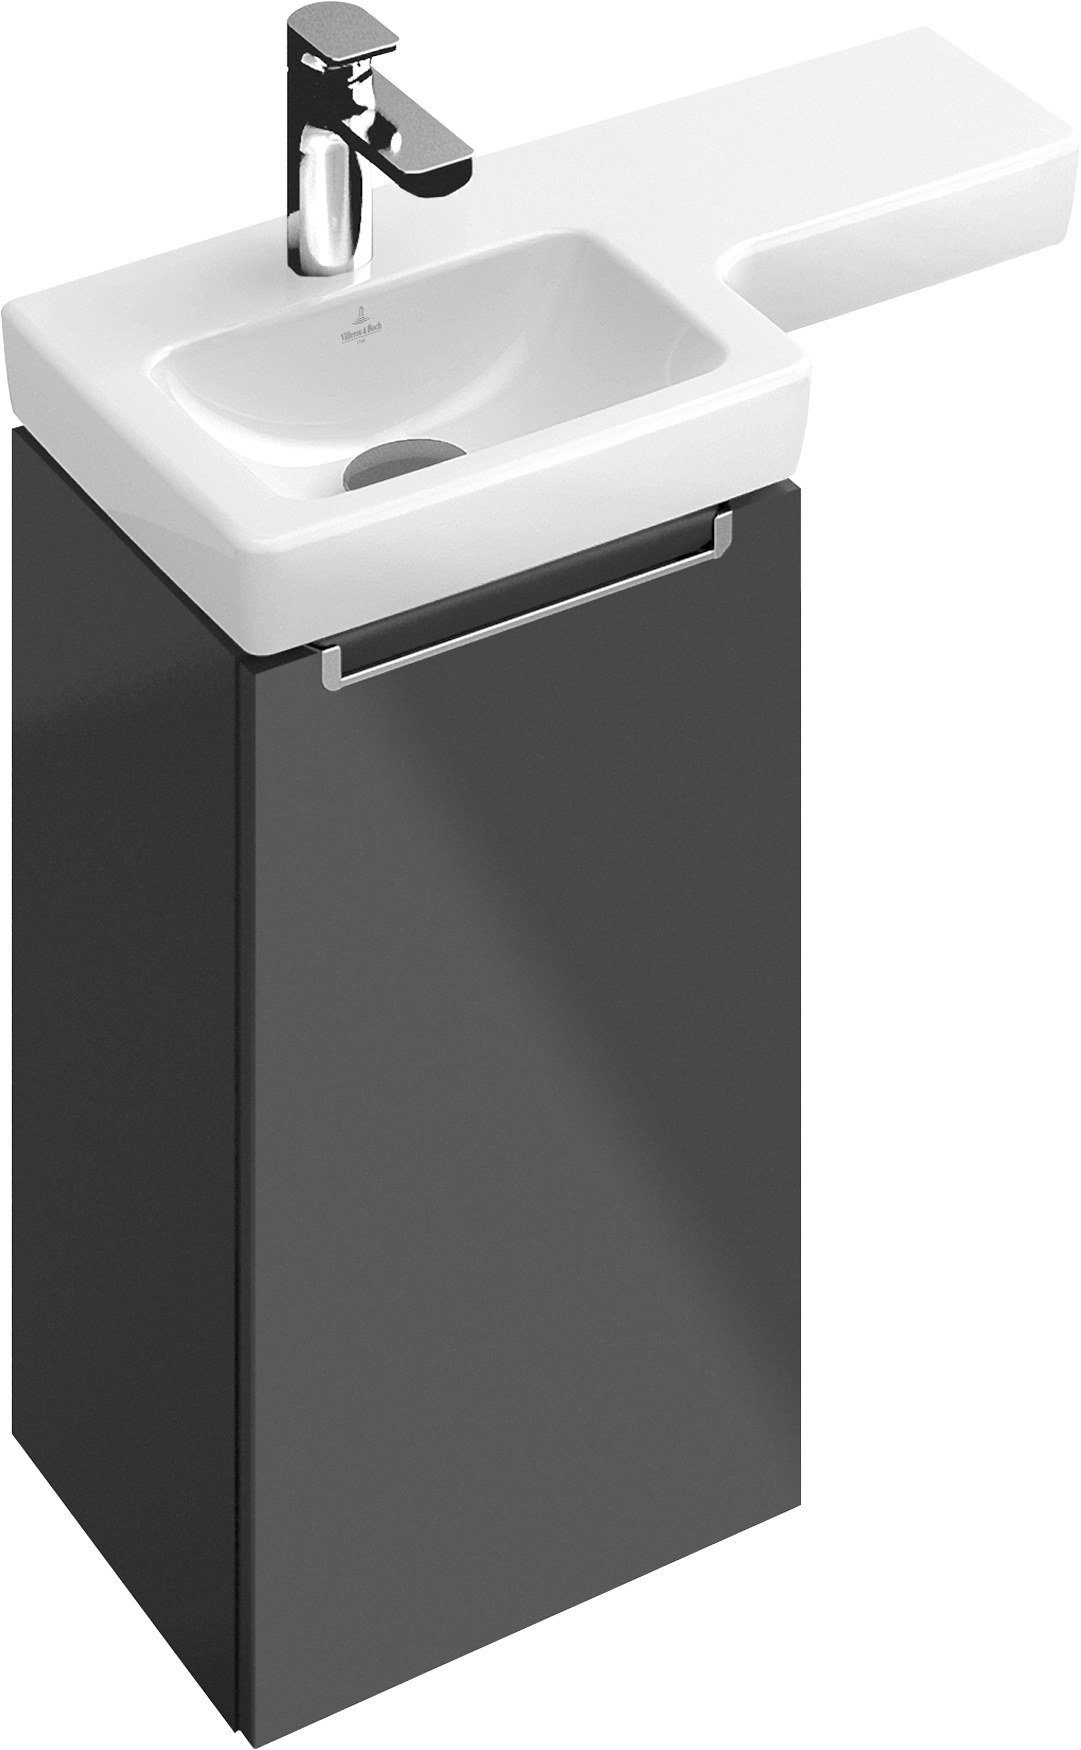 bathroom sink cabinets. Subway 2 0 Bathroom Furniture  Vanity Unit For Washbasin Sink Cabinets A81600 Villeroy Boch